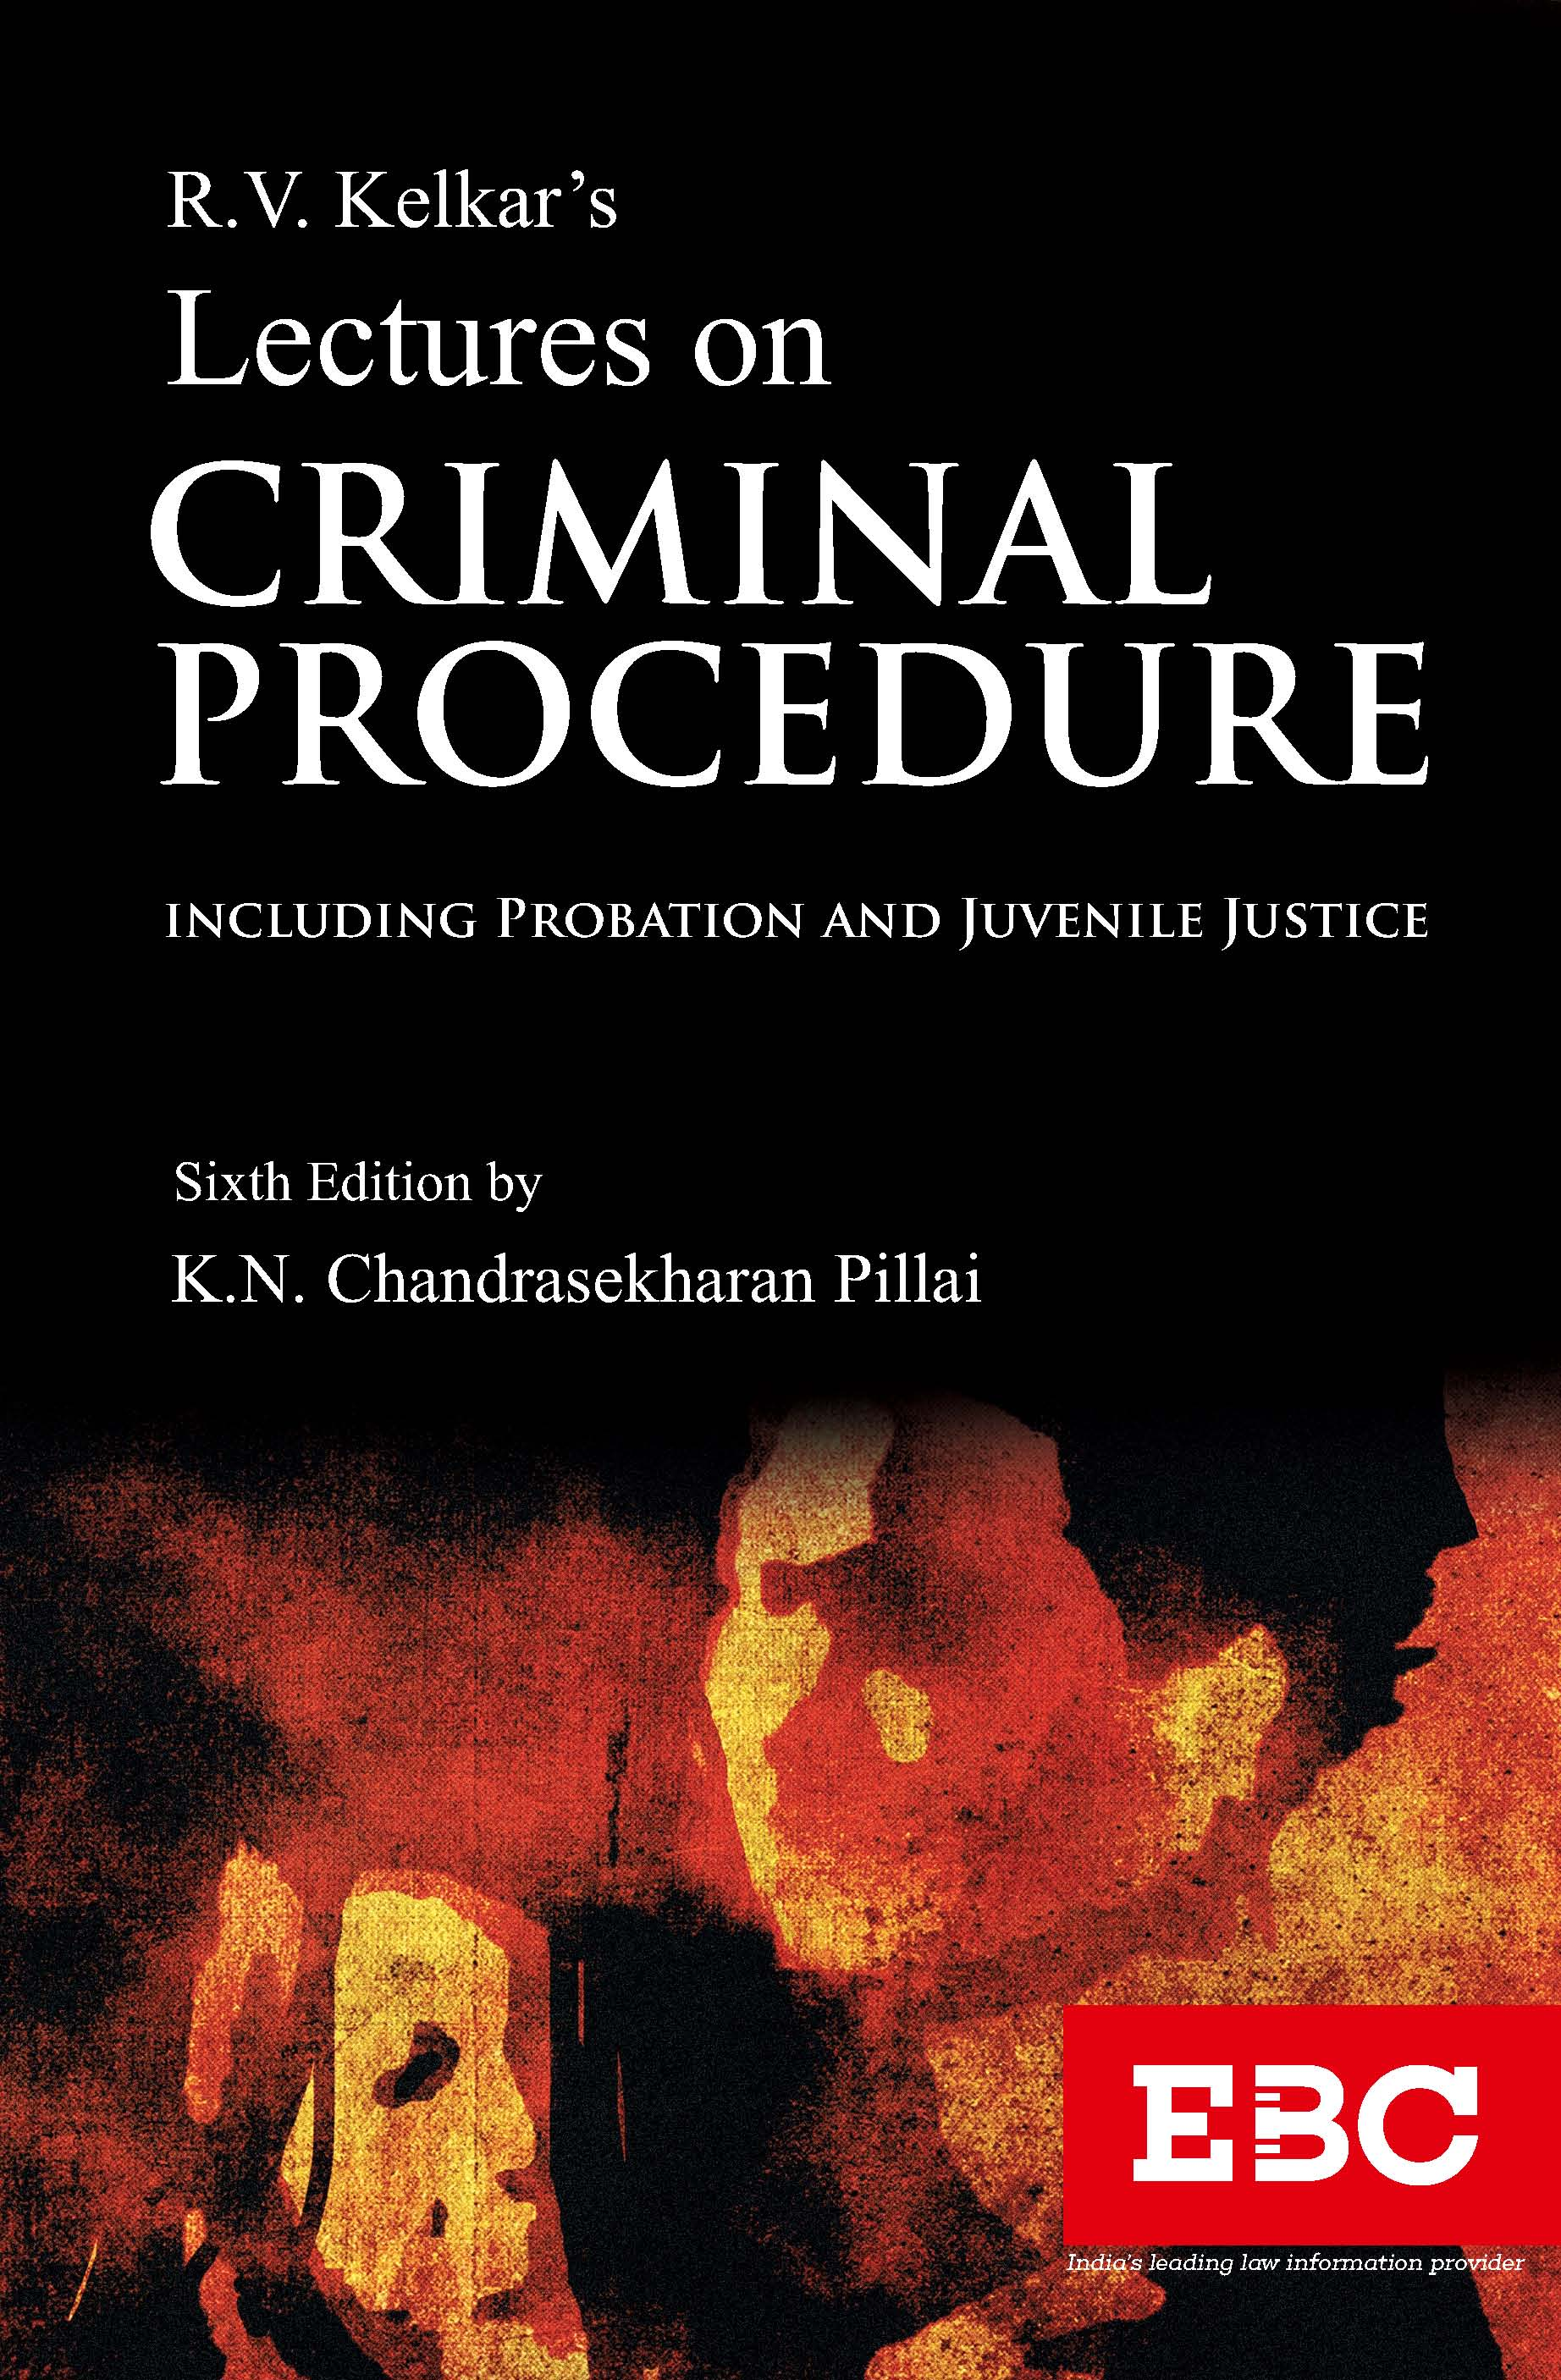 R.V. Kelkar's Lectures on Criminal Procedure Code